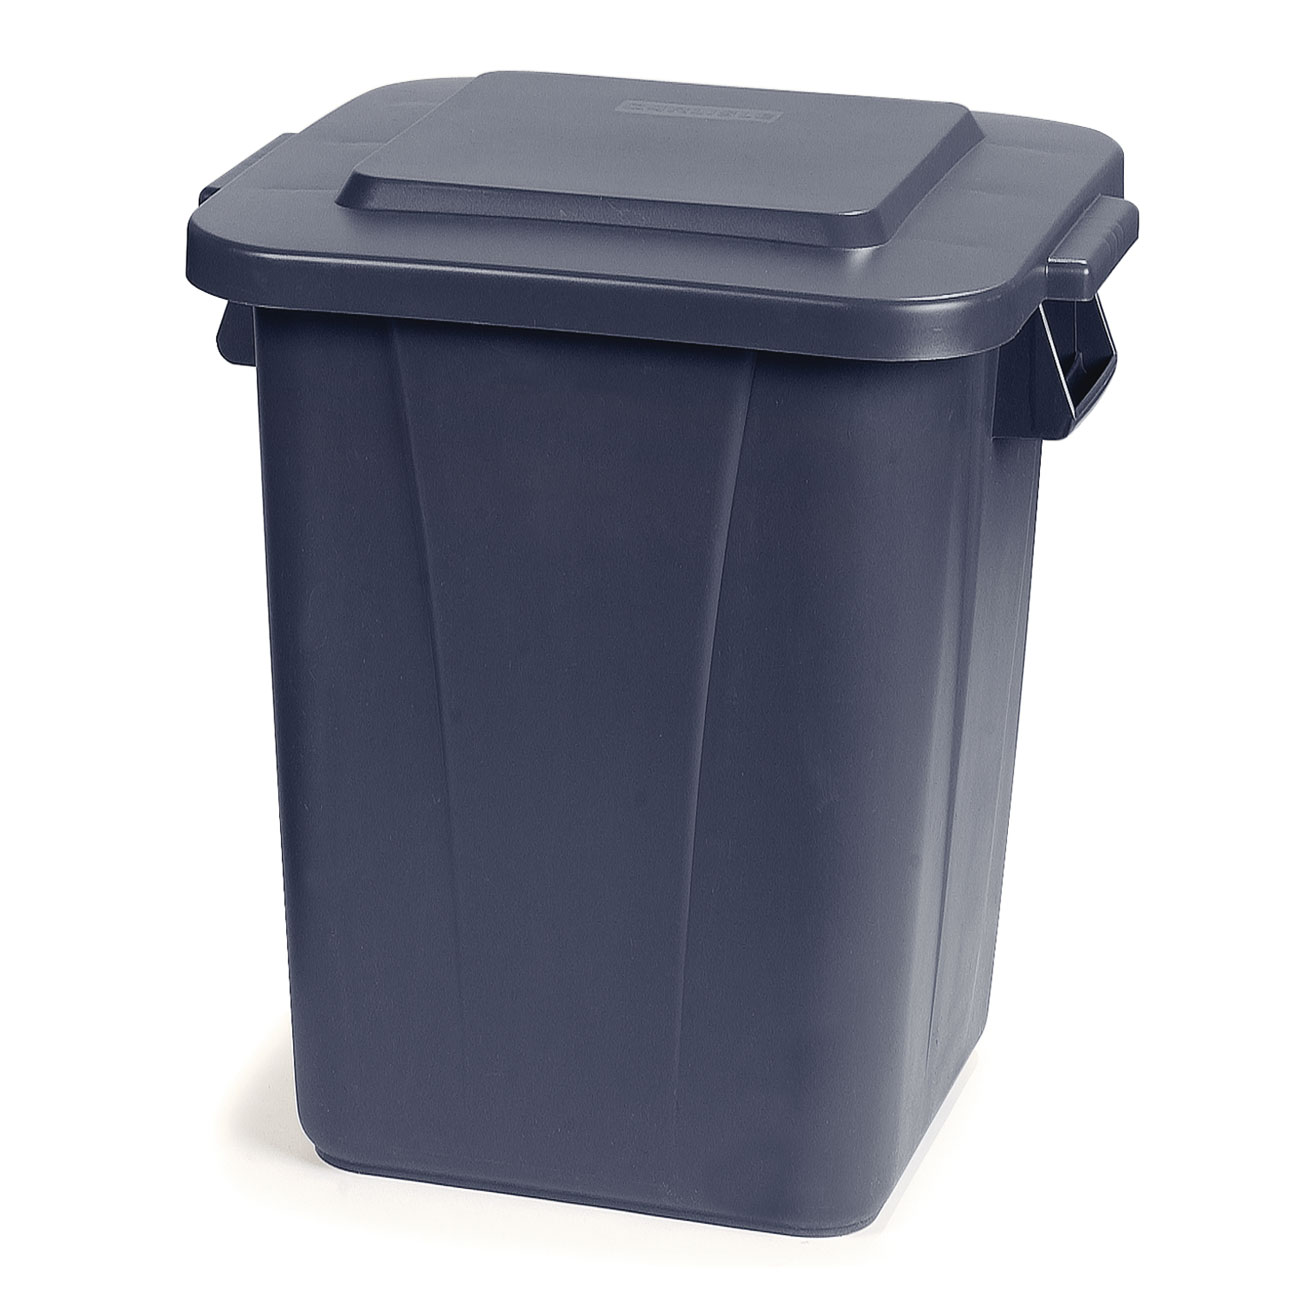 Carlisle 34154023 40-gallon Commercial Trash Can - Plastic, Square, Food Rated